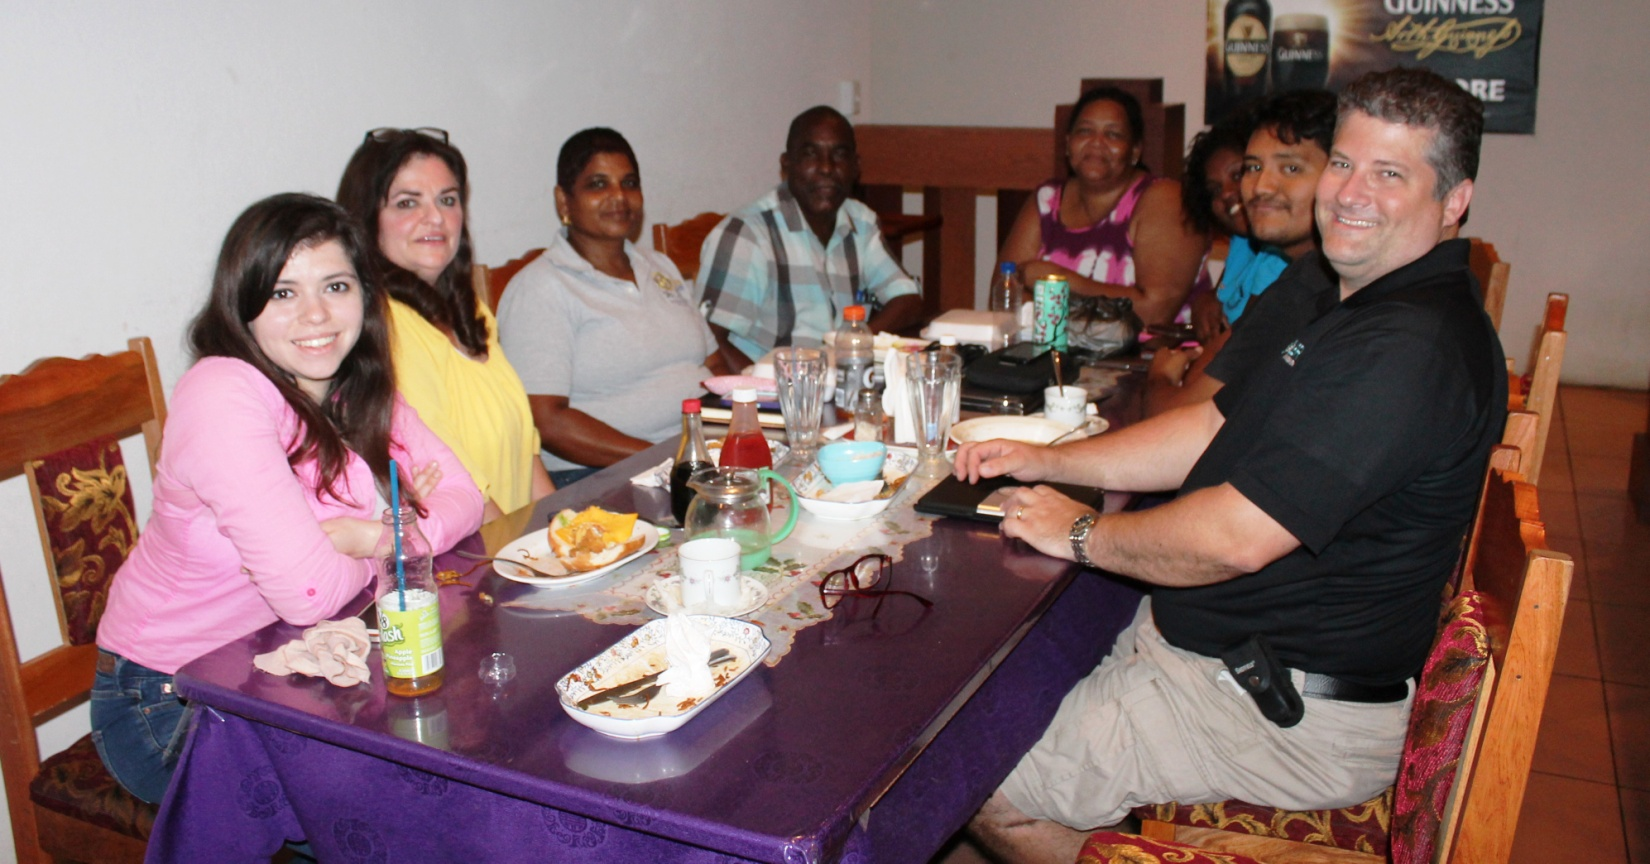 The Mission Team met with the leadership of the Rotary Club of Dangriga for dinner at Ivy's.  From the left are Tori; Amber; Past President and current Treasurer, Judith; former Mayor of Dangriga, current President and President Elect, Gilbert; Secretary and Assistant Governor to the PG Club, Marie; Rotaract President, Ishelly; Mario and Kent.